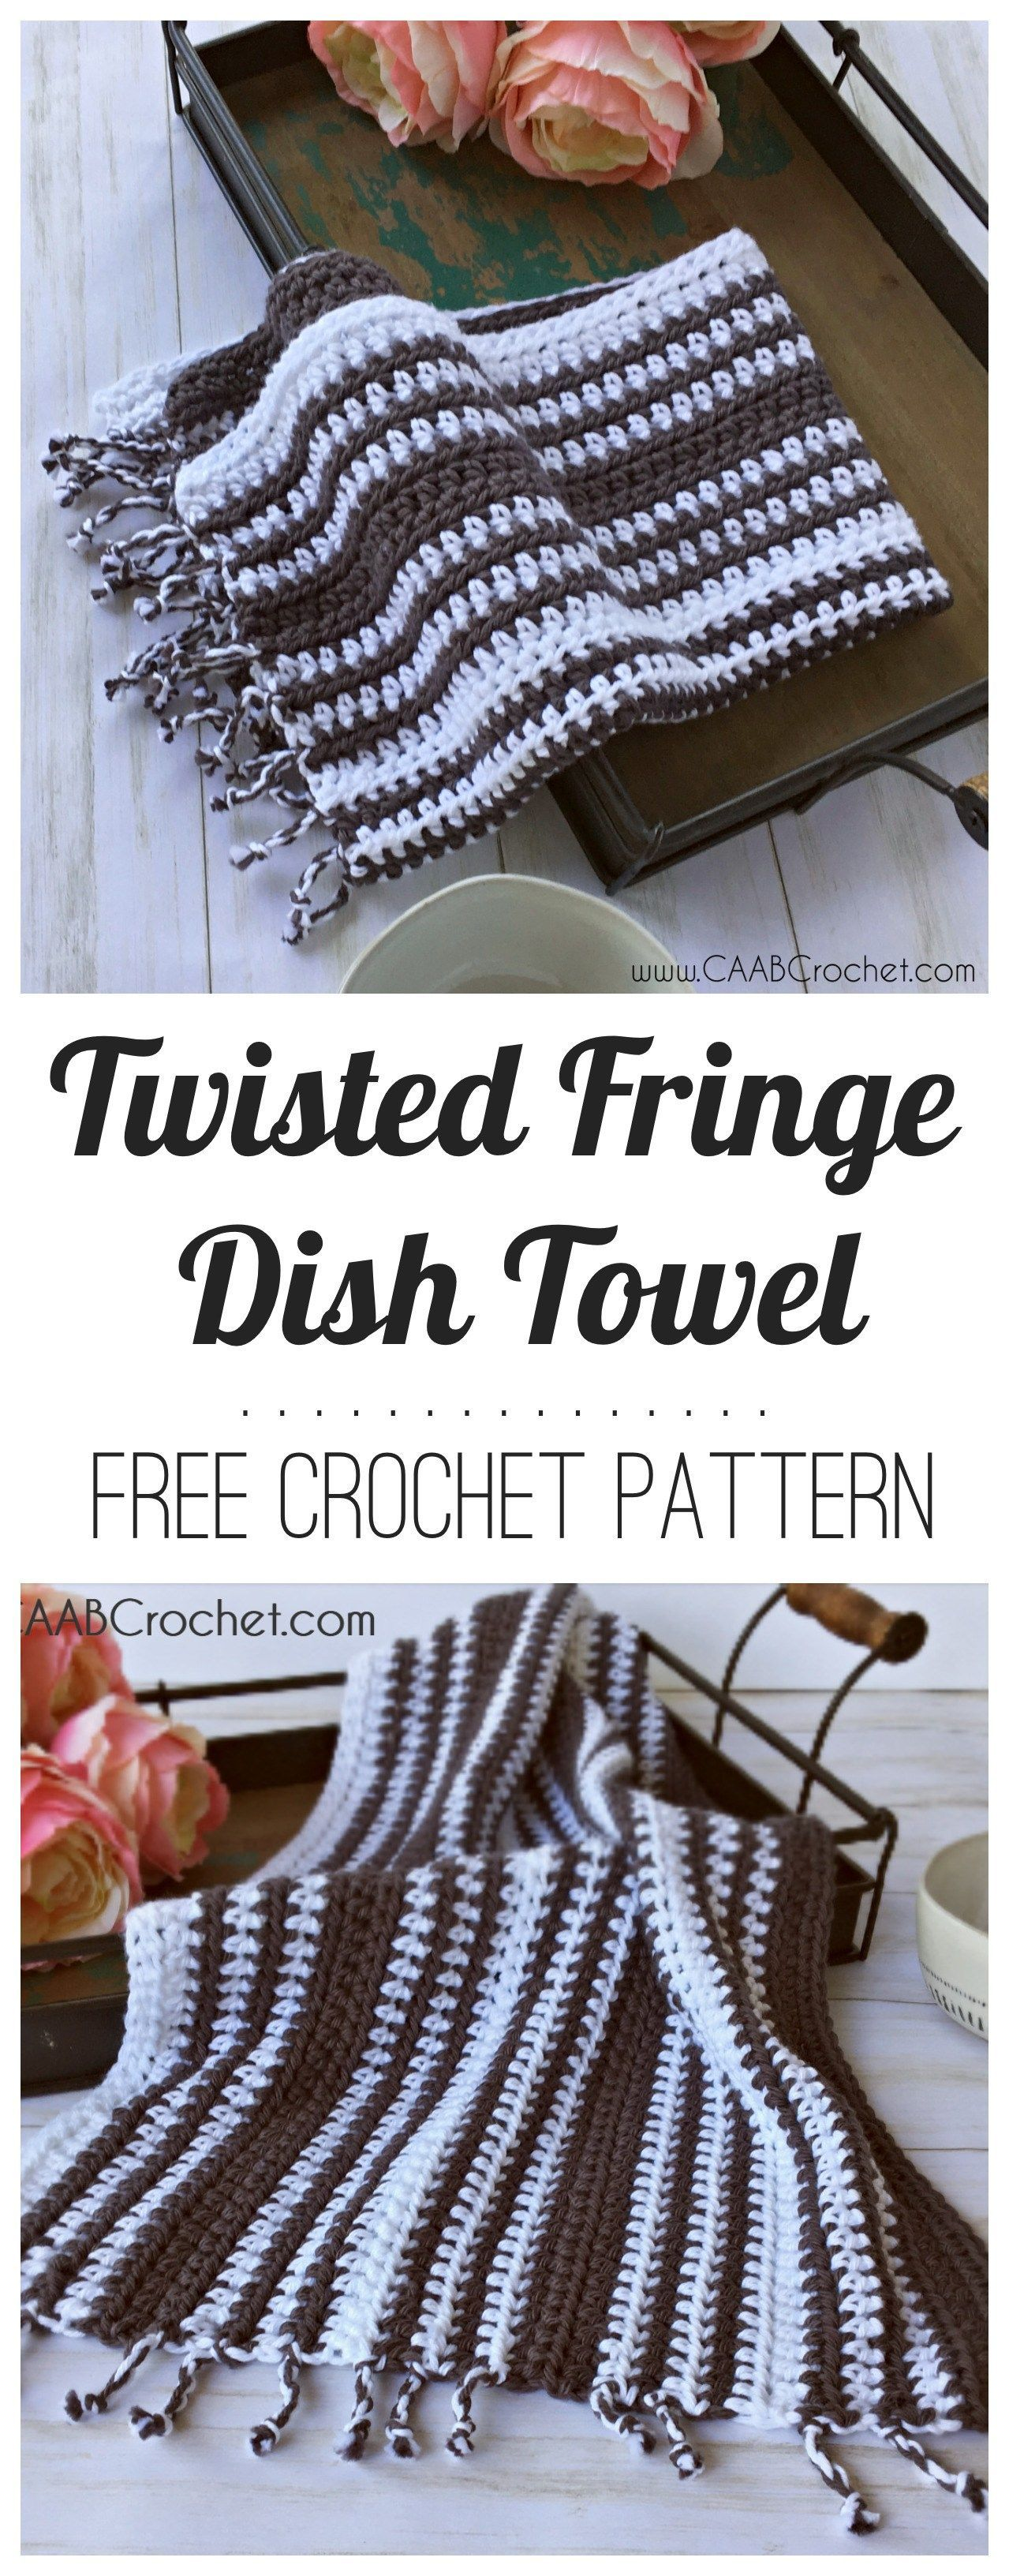 Crochet Dish Towel Pattern This crochet dish towel pattern is reminiscent of a \tea towel.\ It is easy to construct and comes with instructions for this fun twisted fringe edging. #pillowedgingcrochet